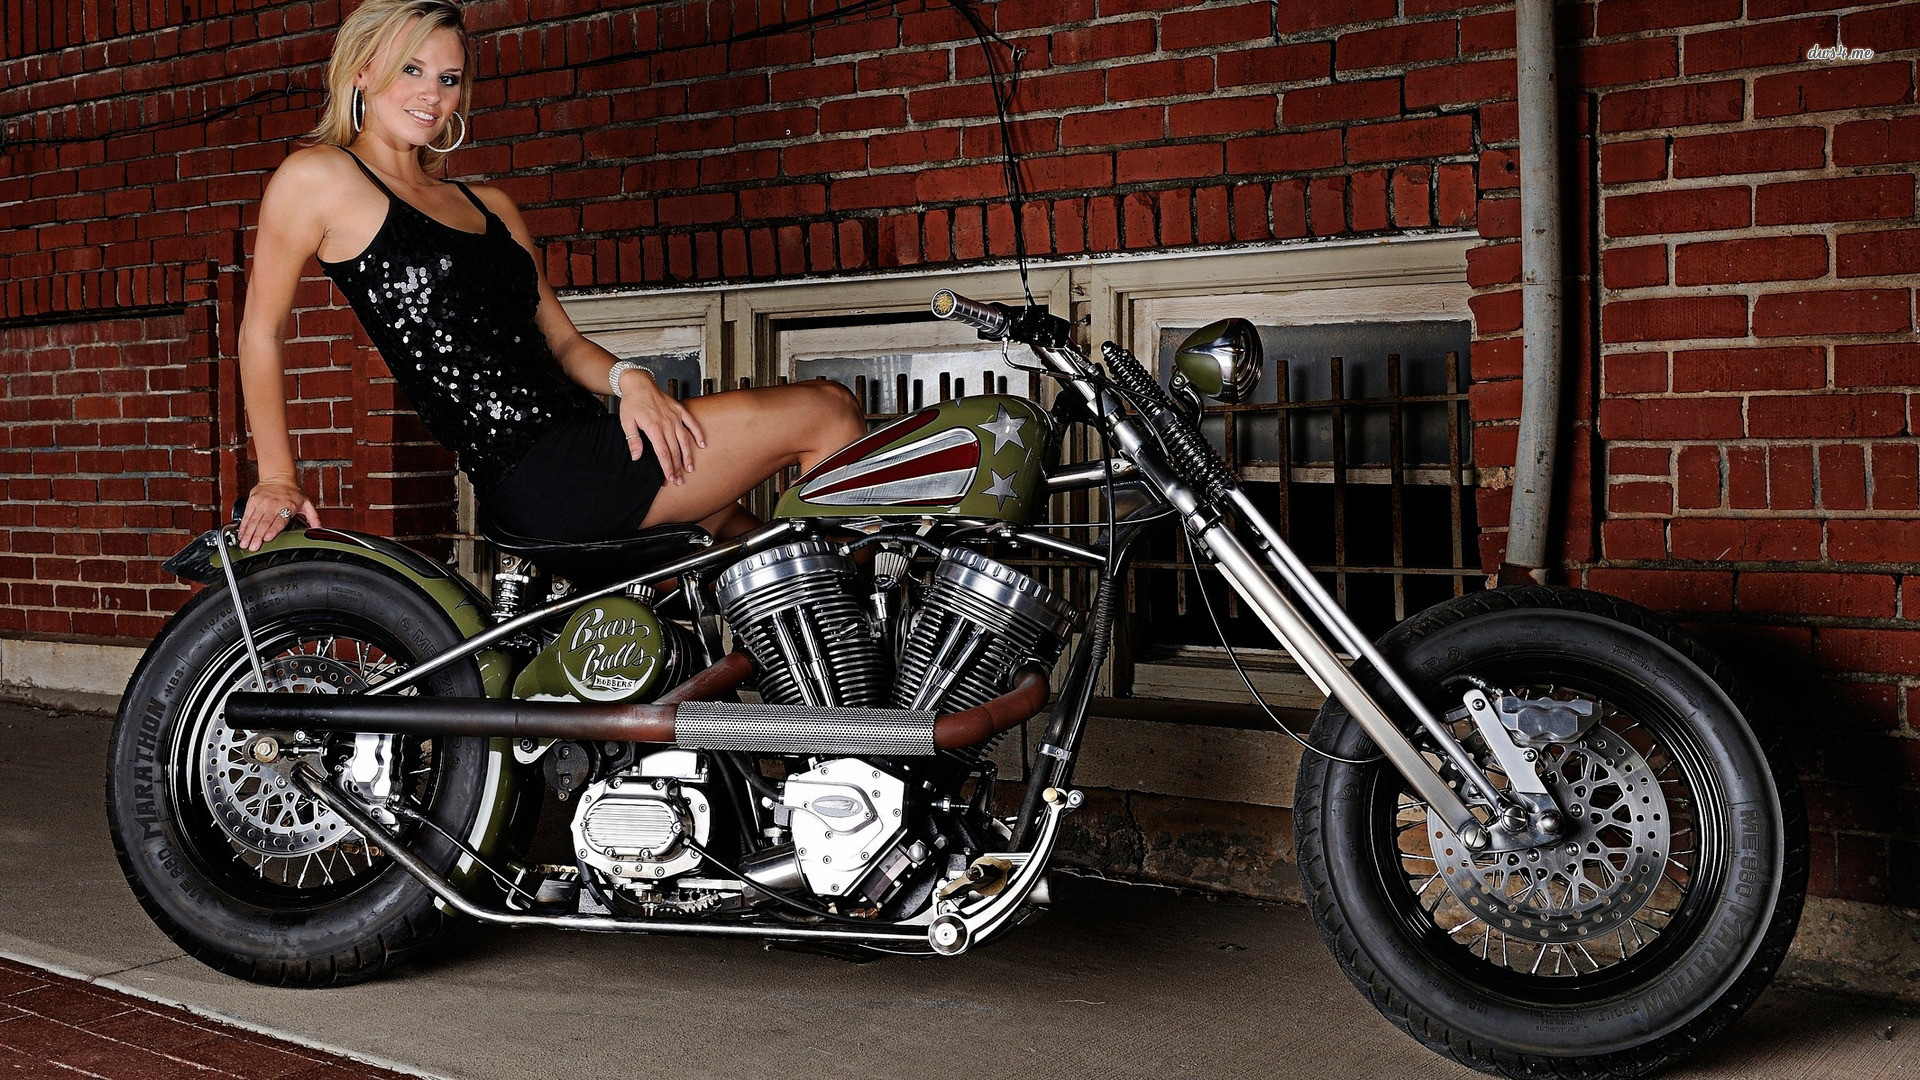 Res: 1920x1080, ... Woman with Brass Balls Bobbers bike wallpaper  ...